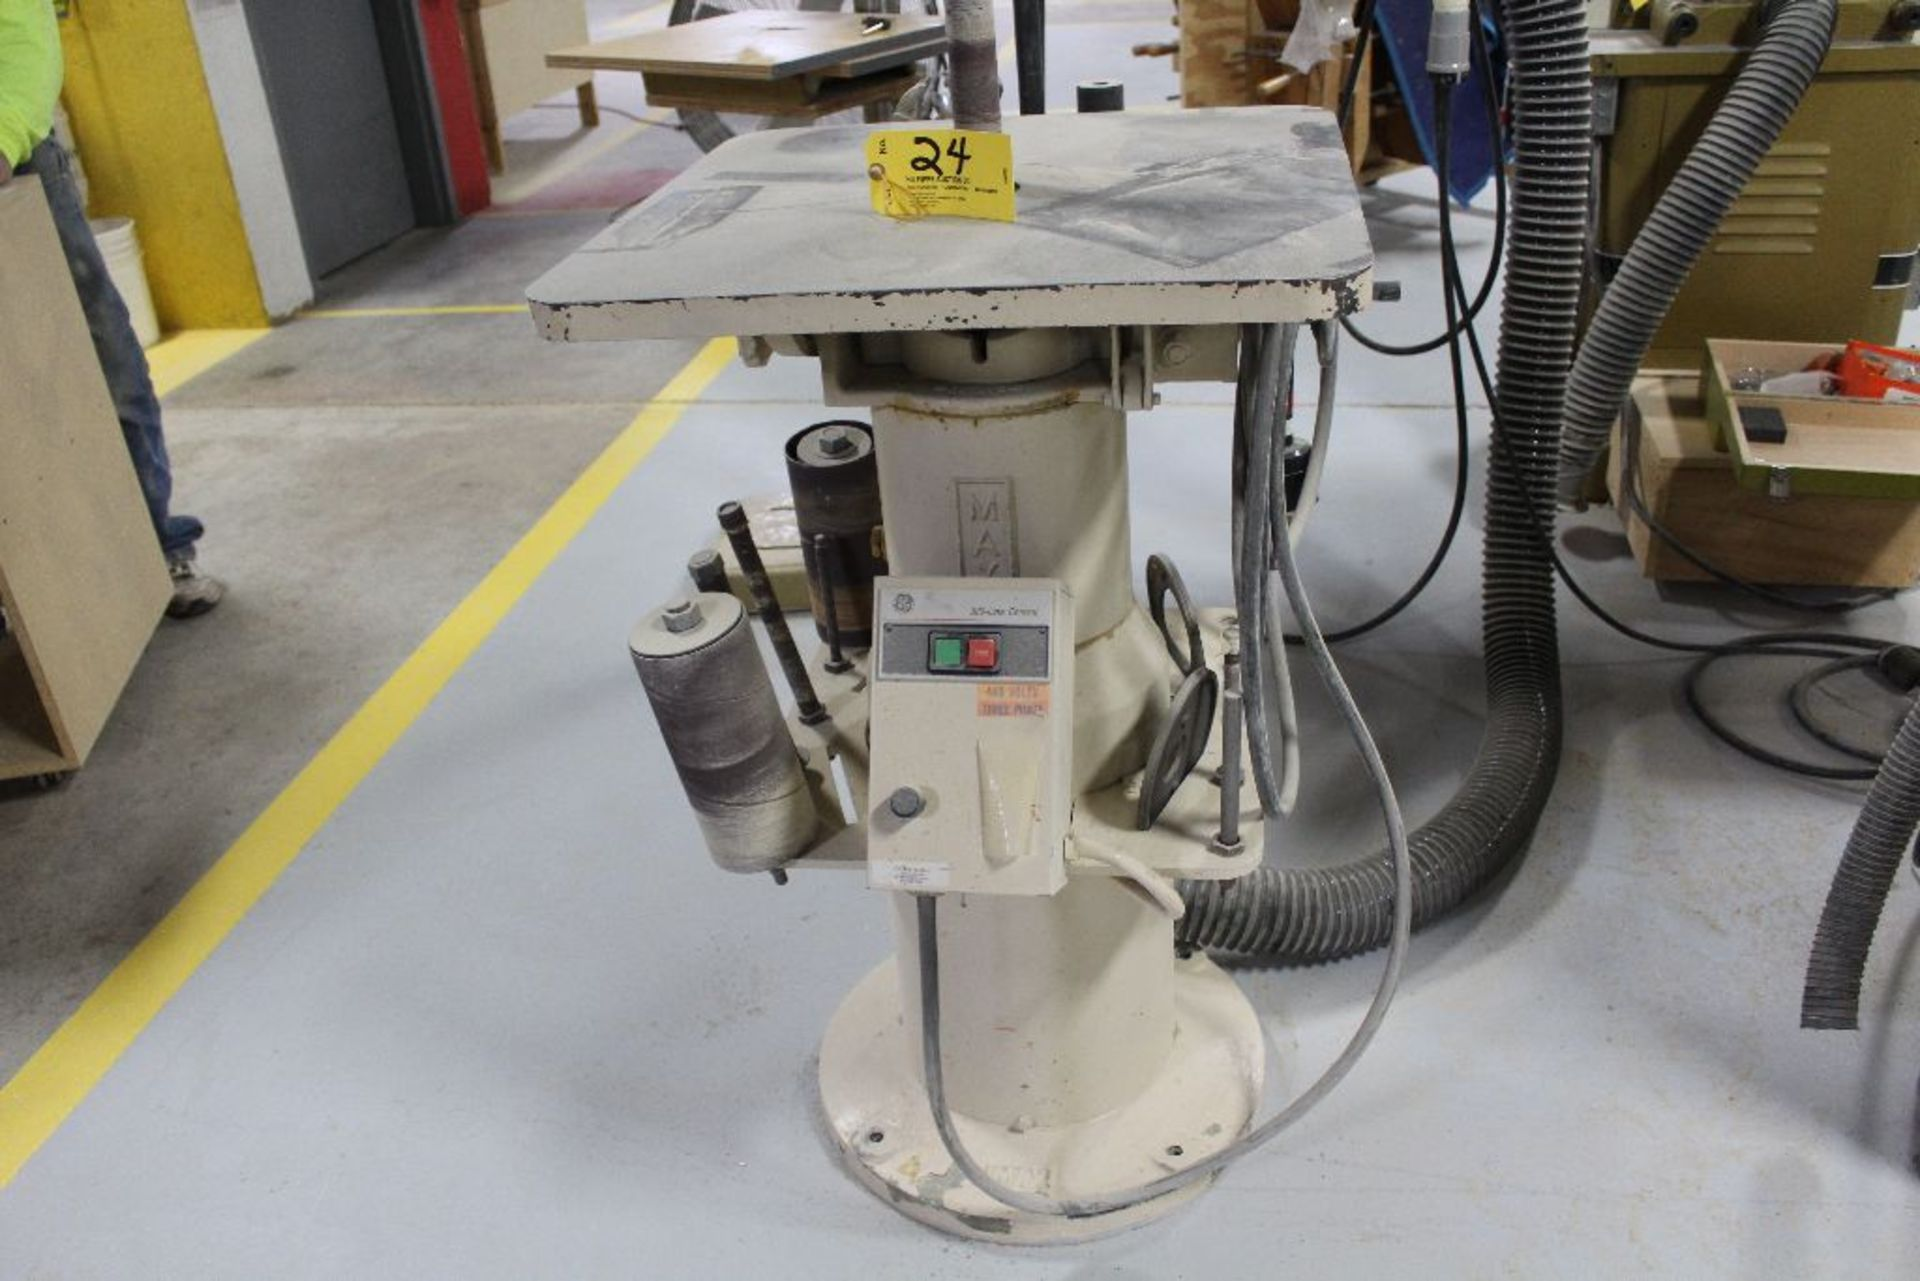 Lot 024 - Max spindle sander, VS1-18, sn 94358, 460, 3 phase, w/7 variable speeds.